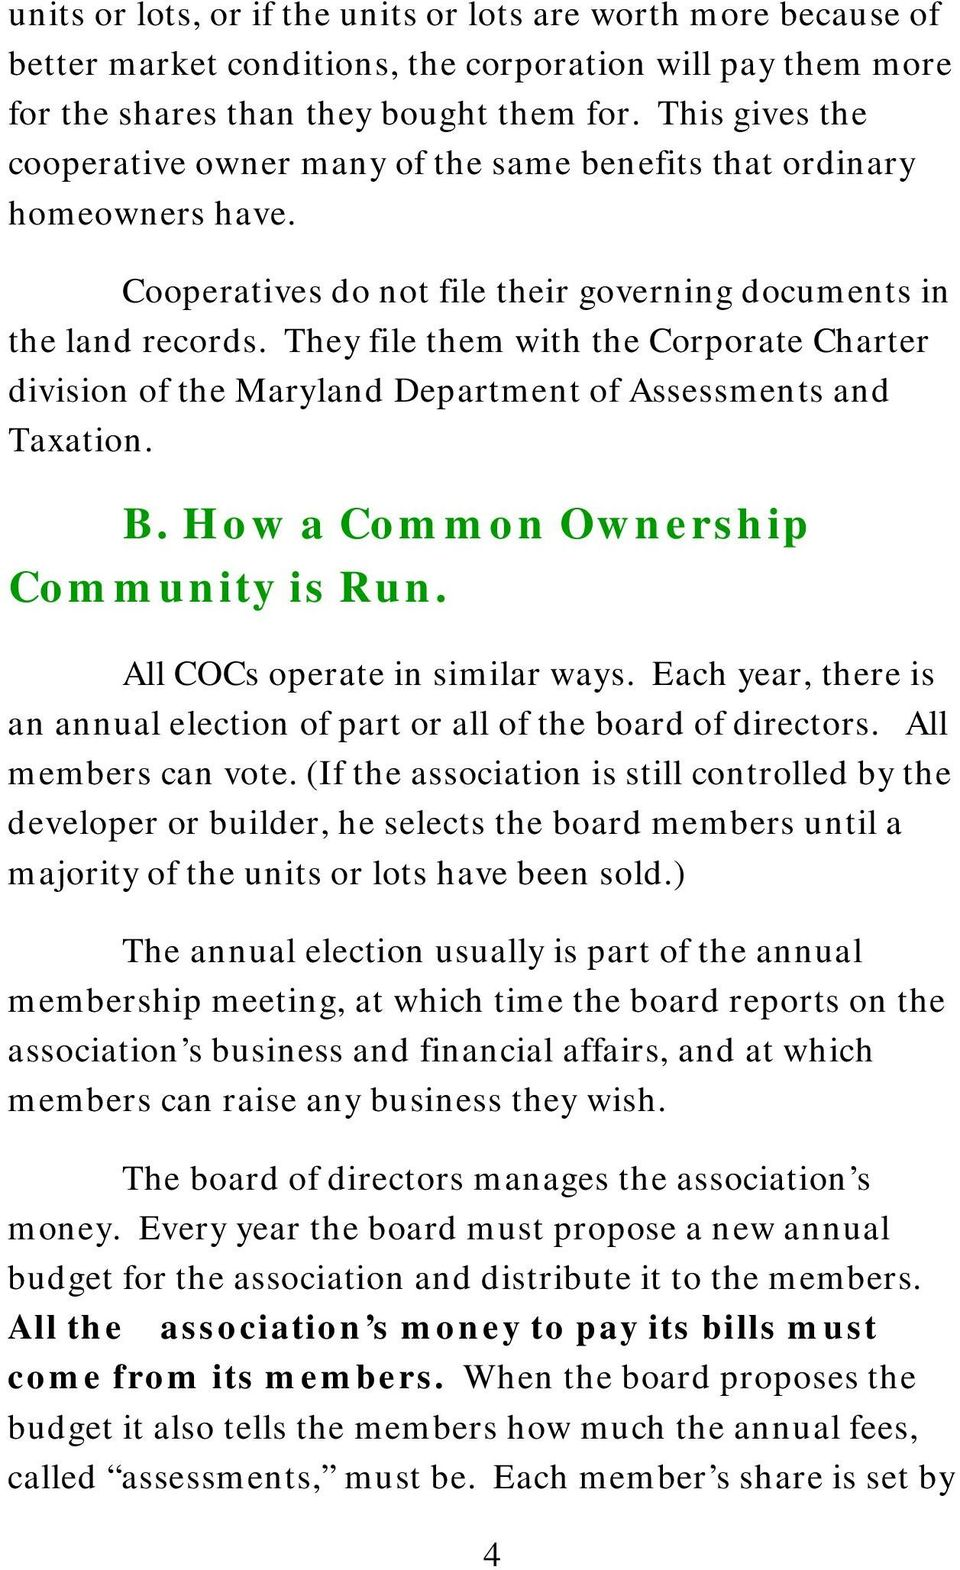 They file them with the Corporate Charter division of the Maryland Department of Assessments and Taxation. B. How a Common Ownership Community is Run. All COCs operate in similar ways.